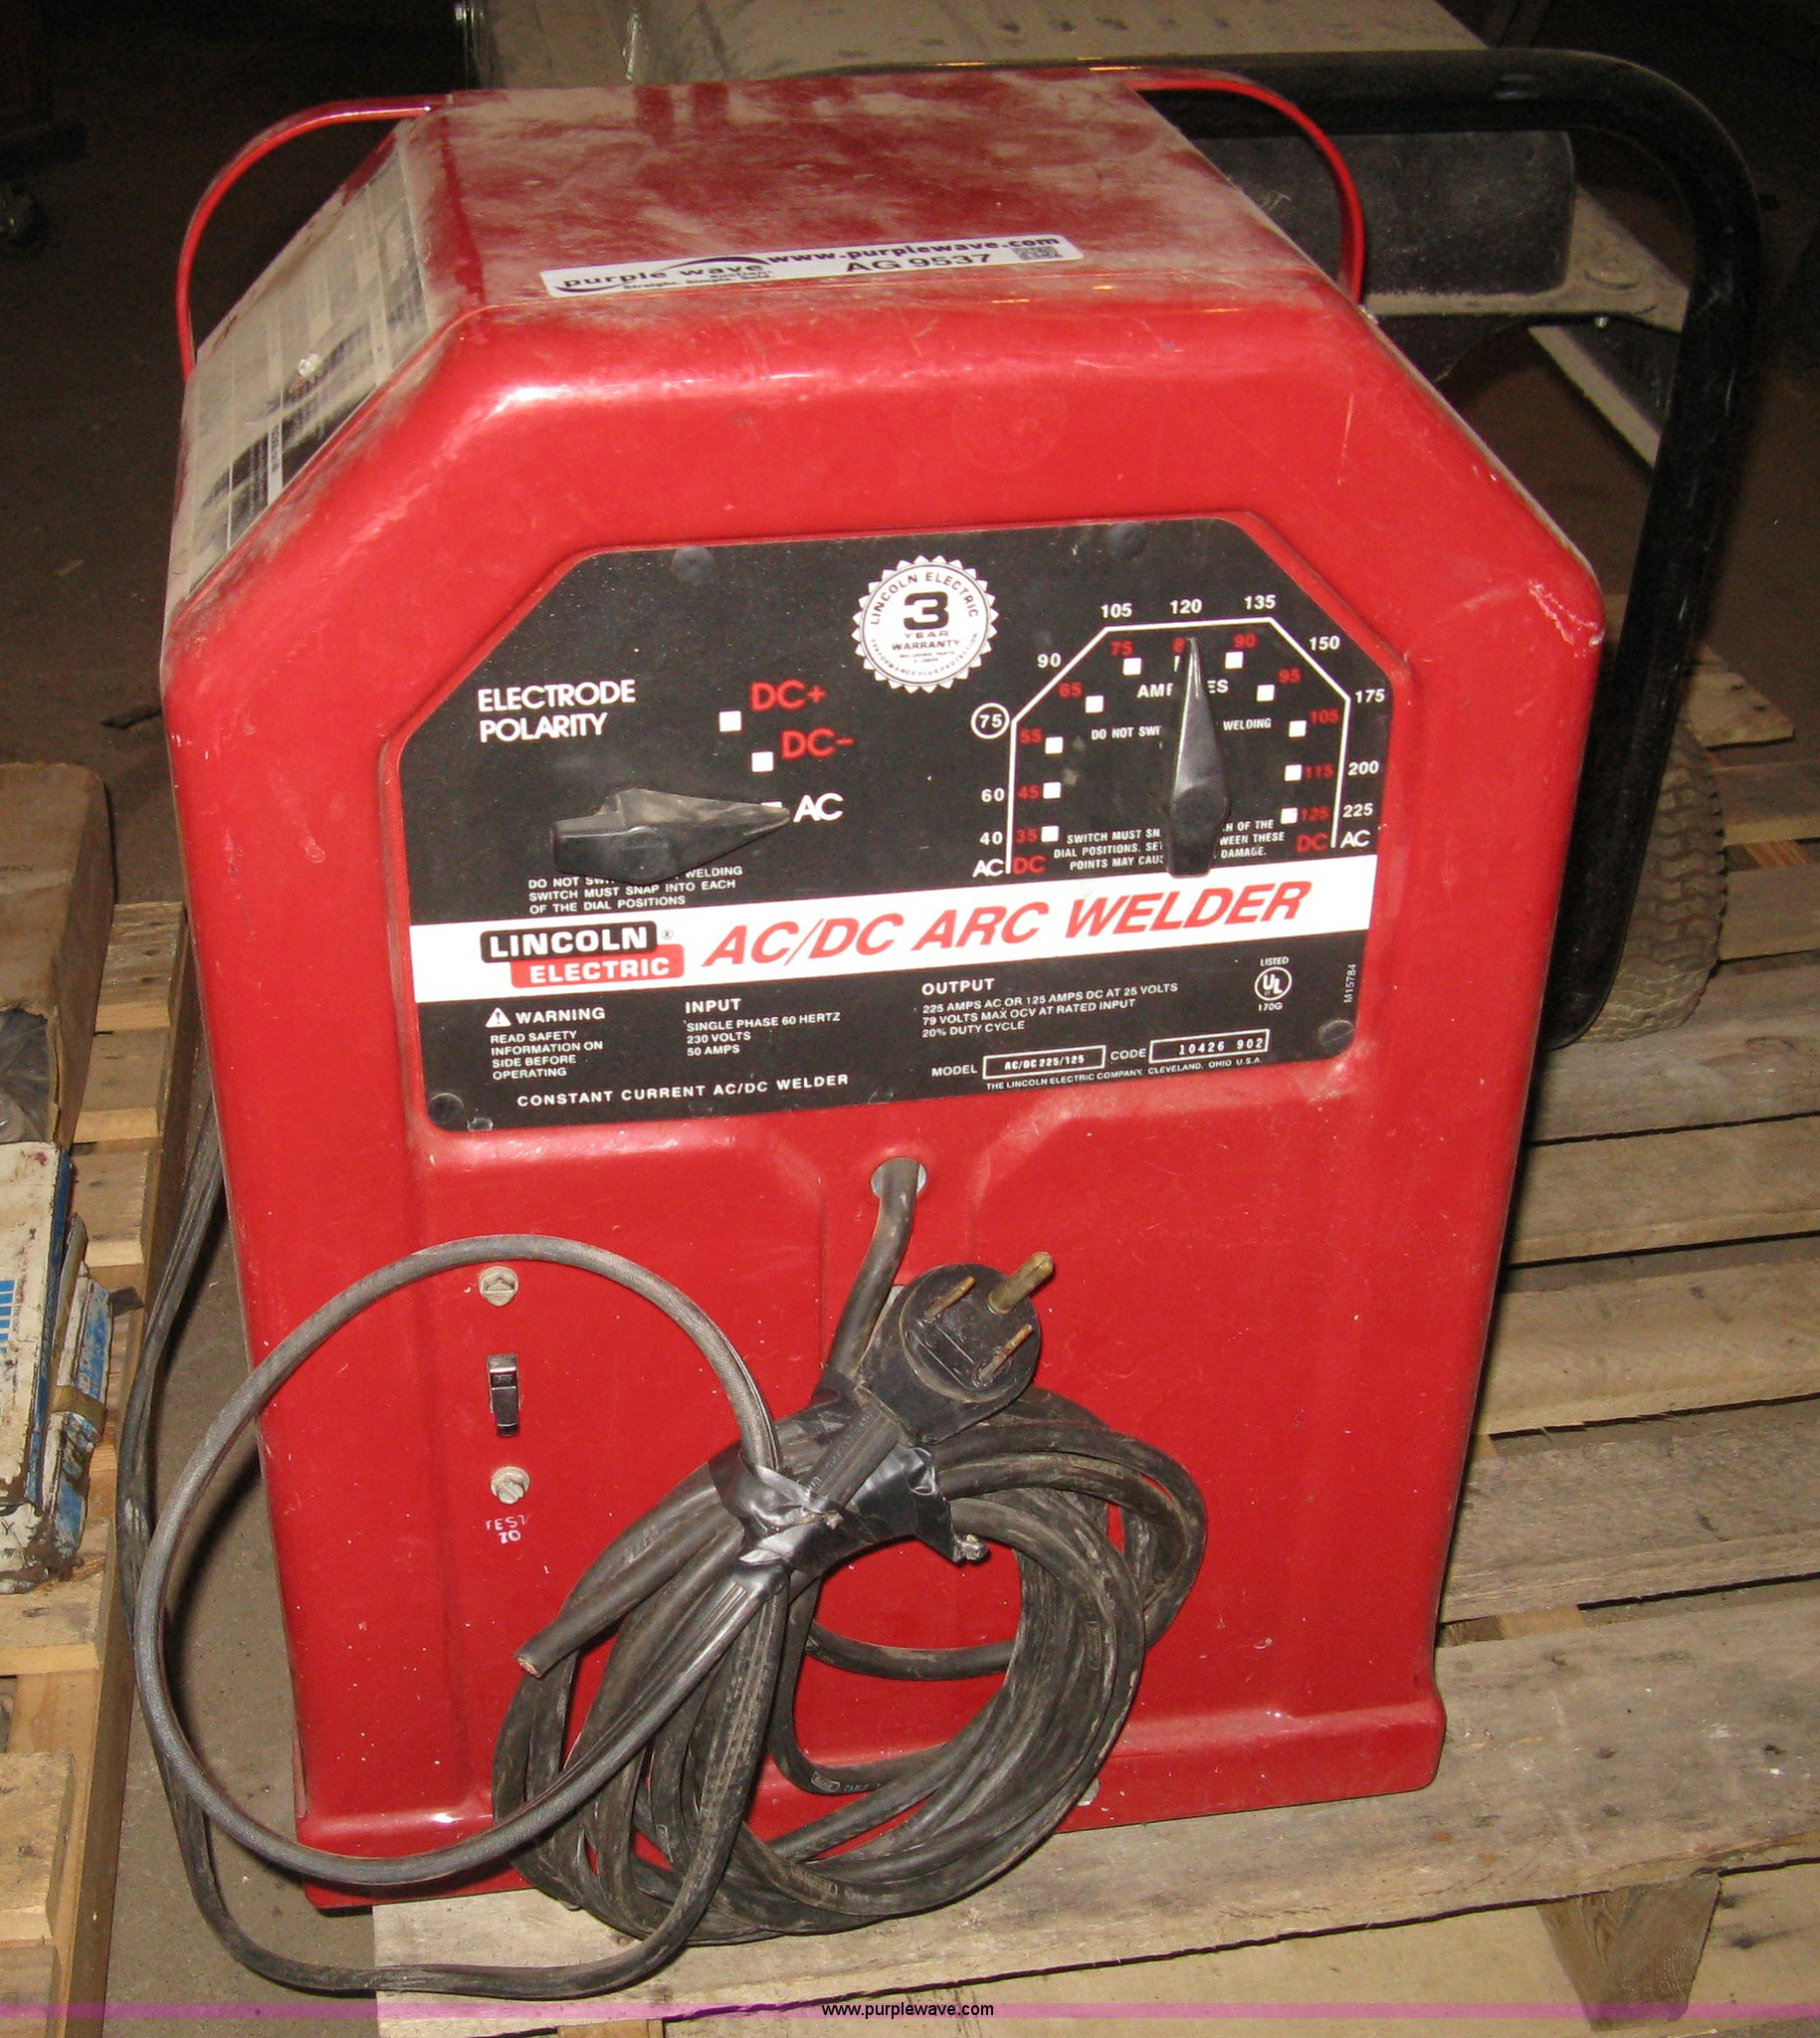 hight resolution of ag9537 image for item ag9537 lincoln 225 125 ac dc arc welder